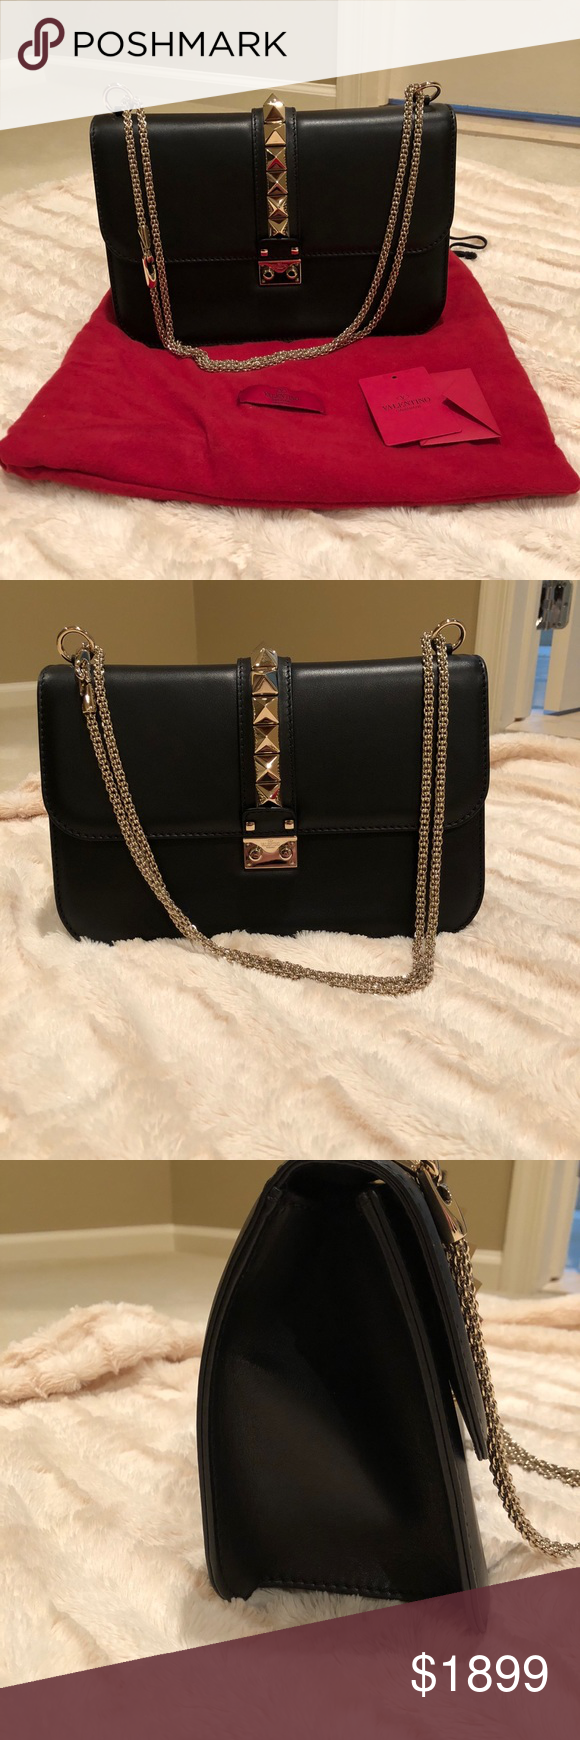 81b9d87fa92f Valentino Rockstud Glam Lock Large Flap Bag Black Brand new, with dust bag  and tags